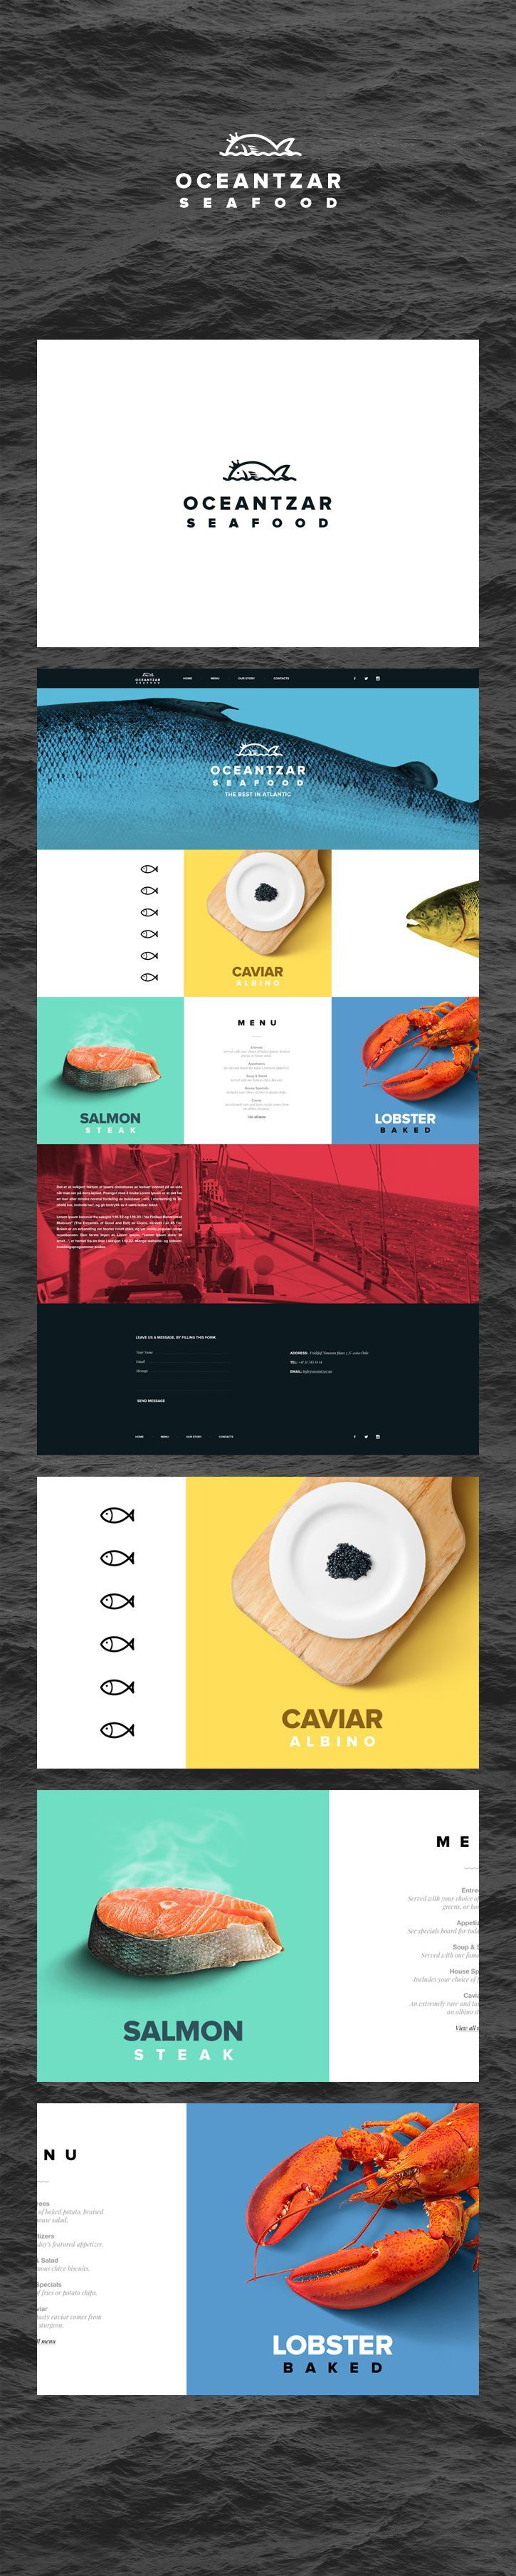 Logo & website design concept for a Seafood Restaurant by Andrei Hancu on Behance